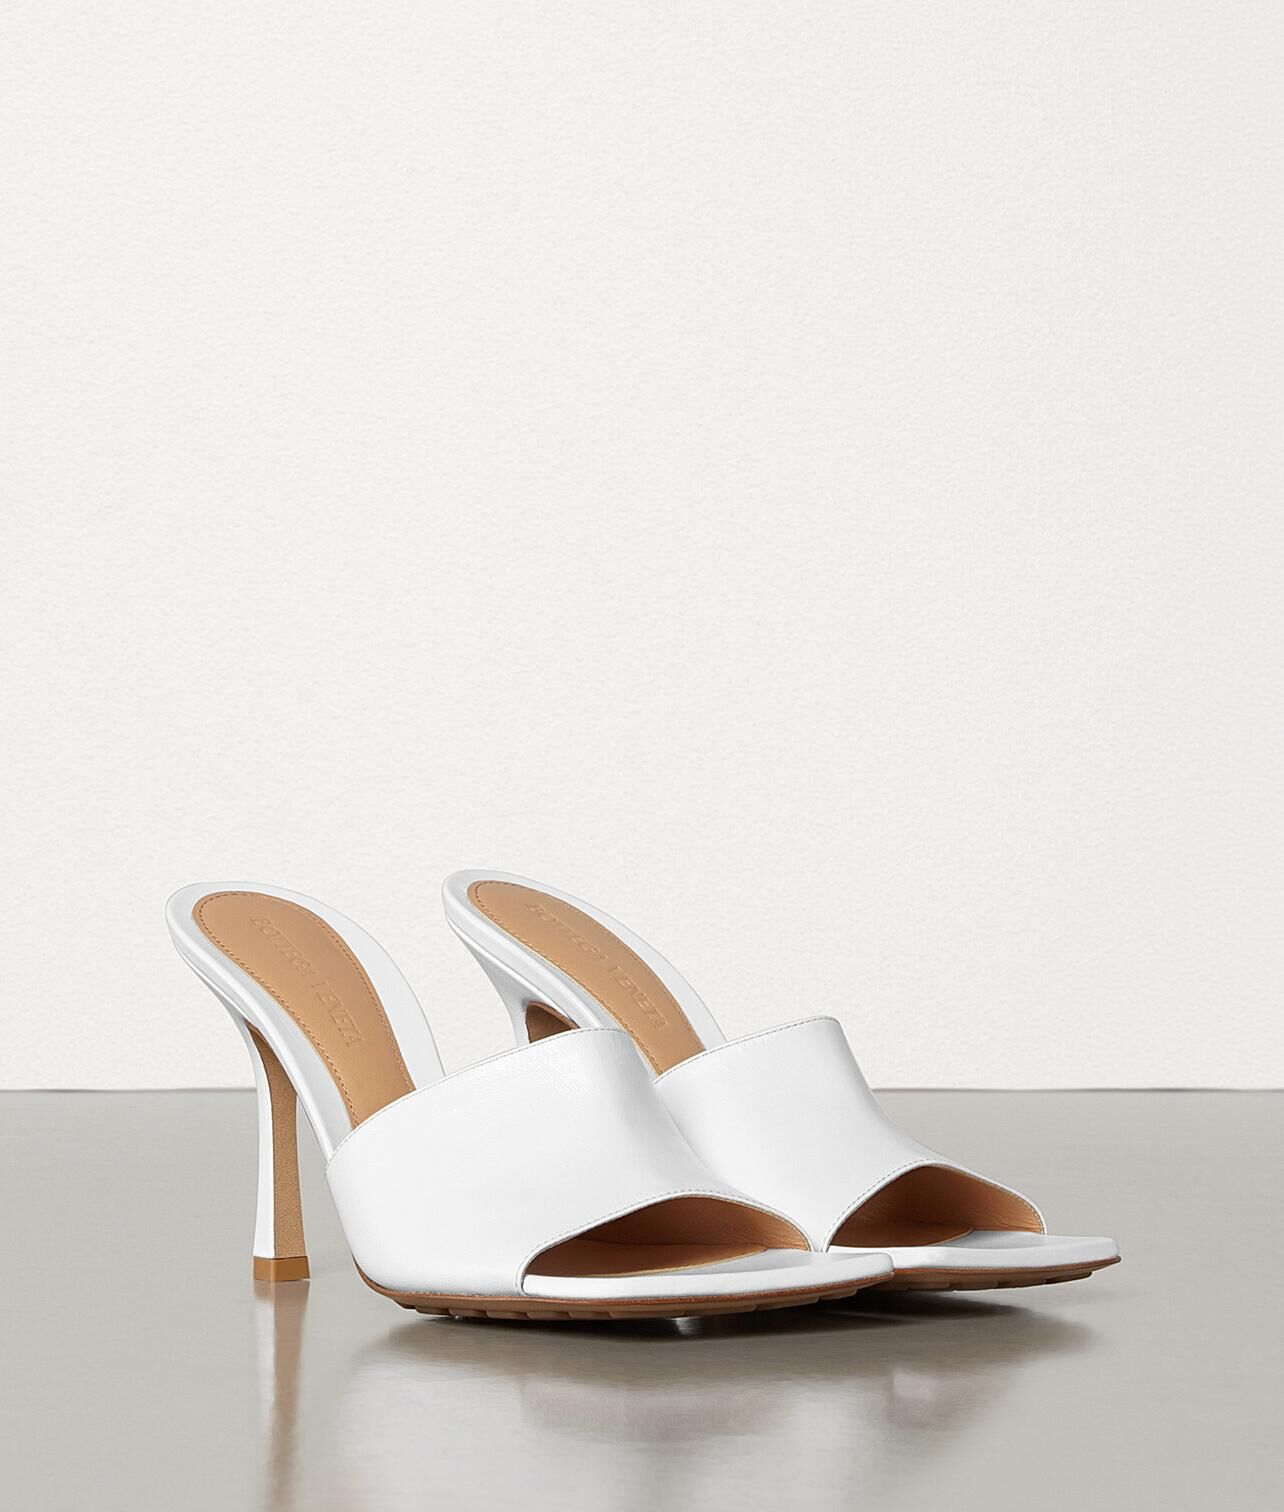 Bottega Veneta Shoes BV2048 White